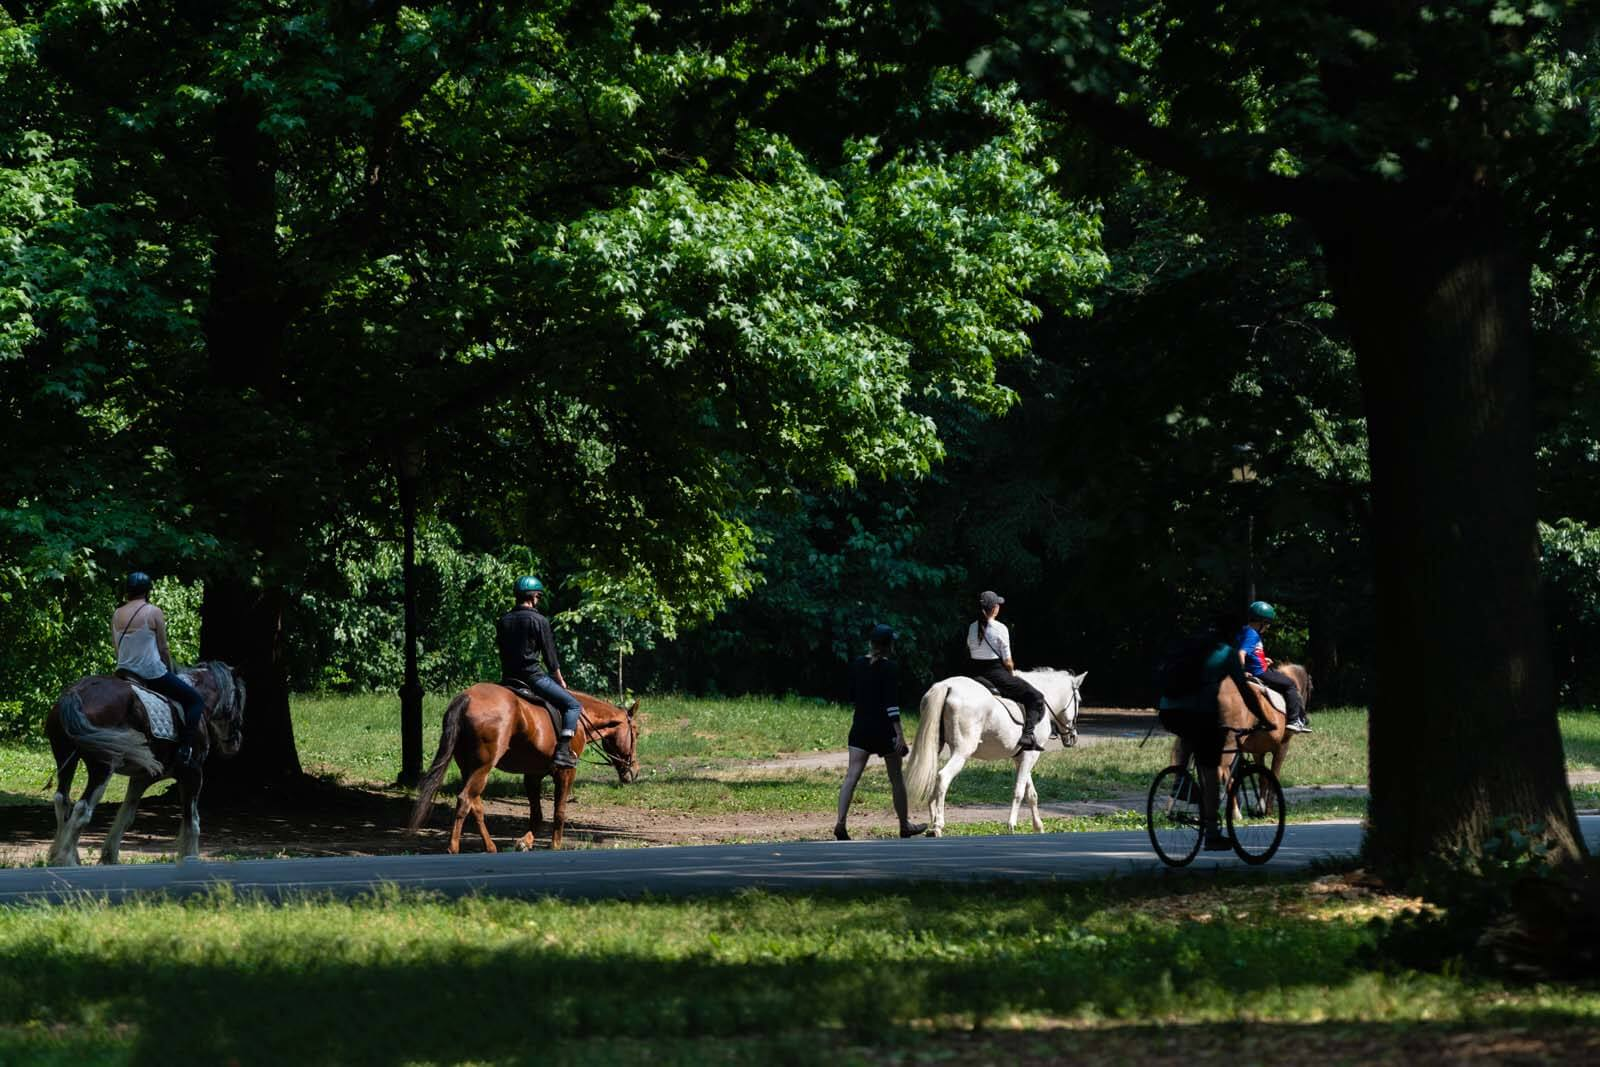 Horseback Riding in Prospect Park in Brooklyn